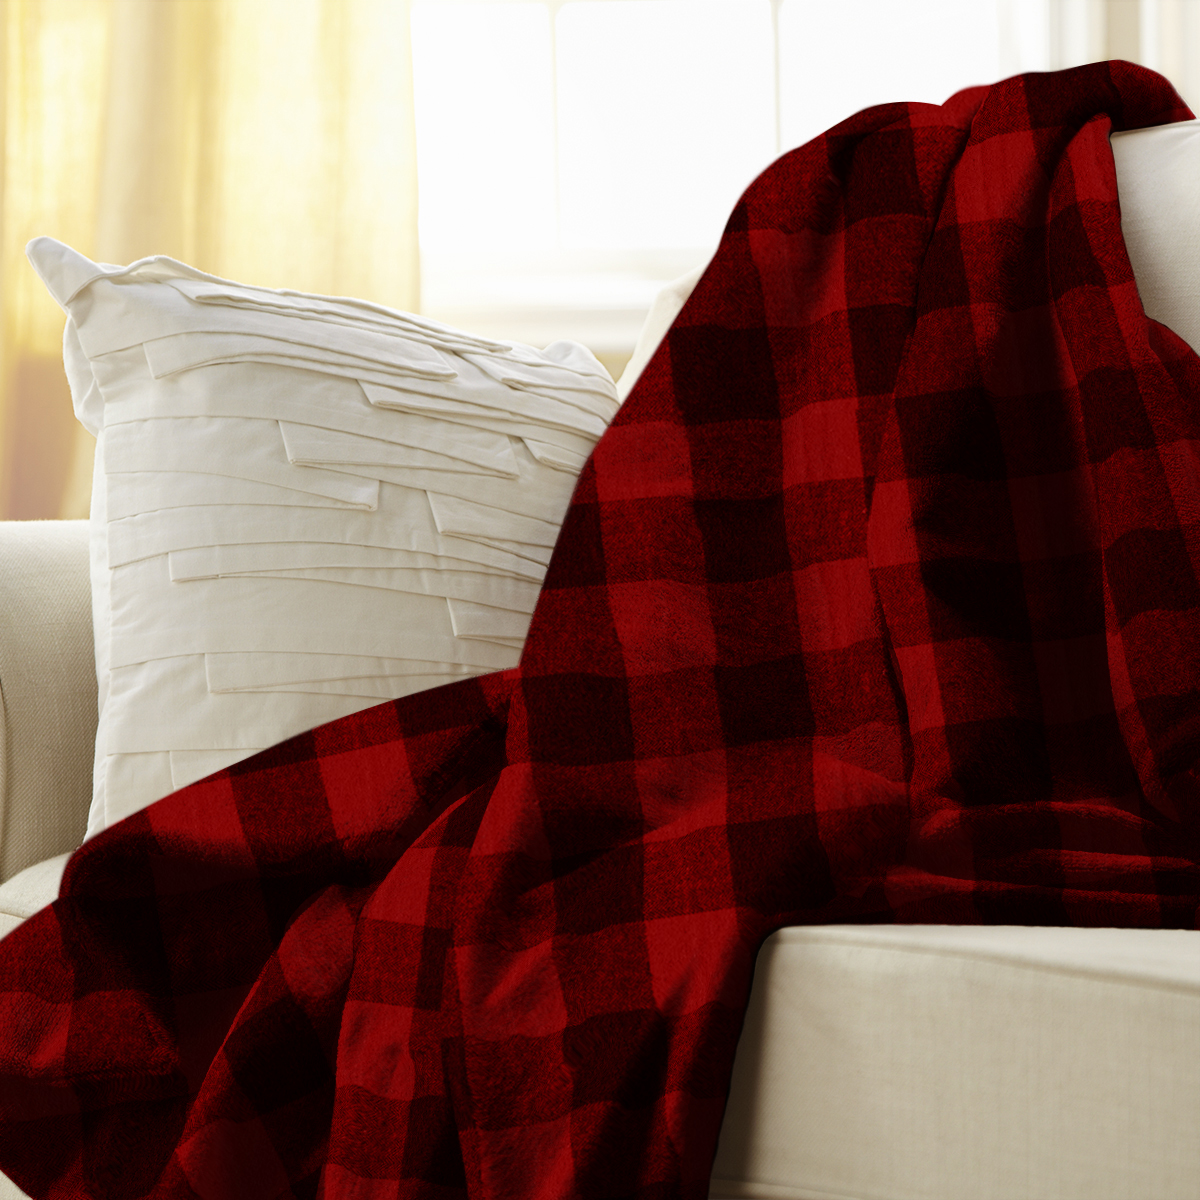 "Sunbeam Heated Electric Microplush Throw Blanket with 3 heat settings, 60"" x 50"", Red Buffalo Plaid"